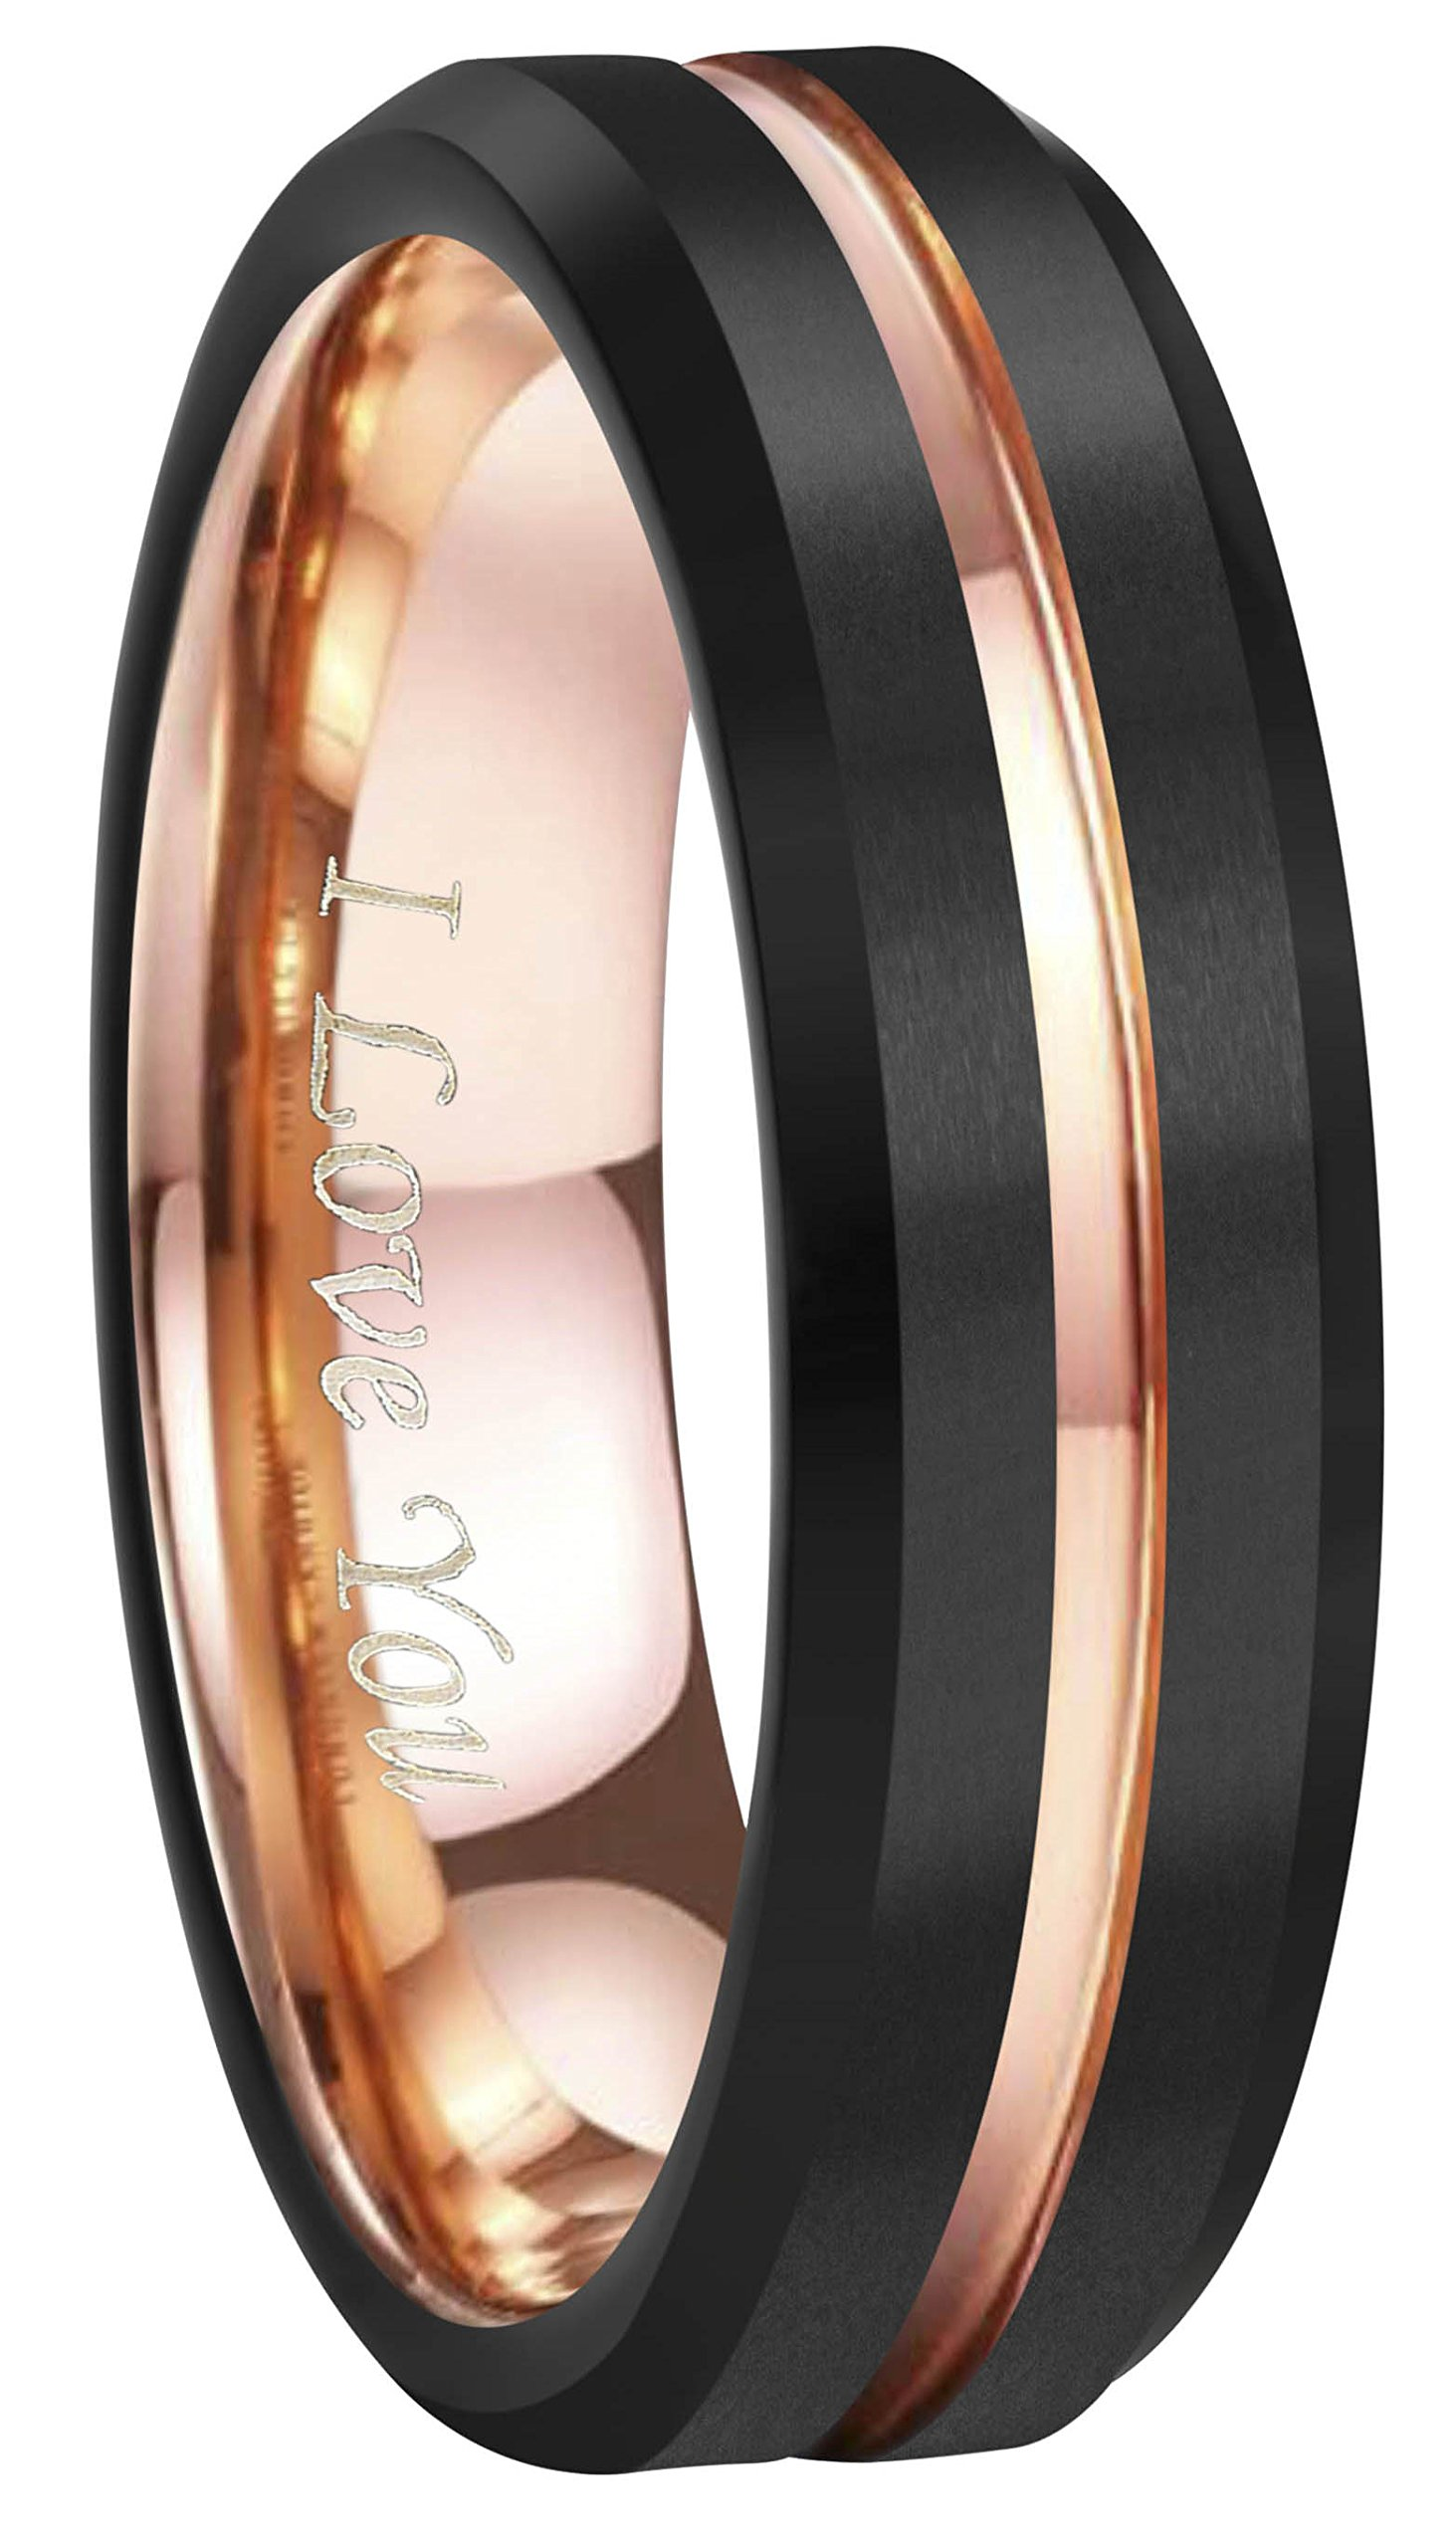 4mm 6mm 8mm 10mm Rose Gold Groove Black Matte Finish Tungsten Carbide Wedding Band Ring Engraved ''I Love You'' (6mm,10)